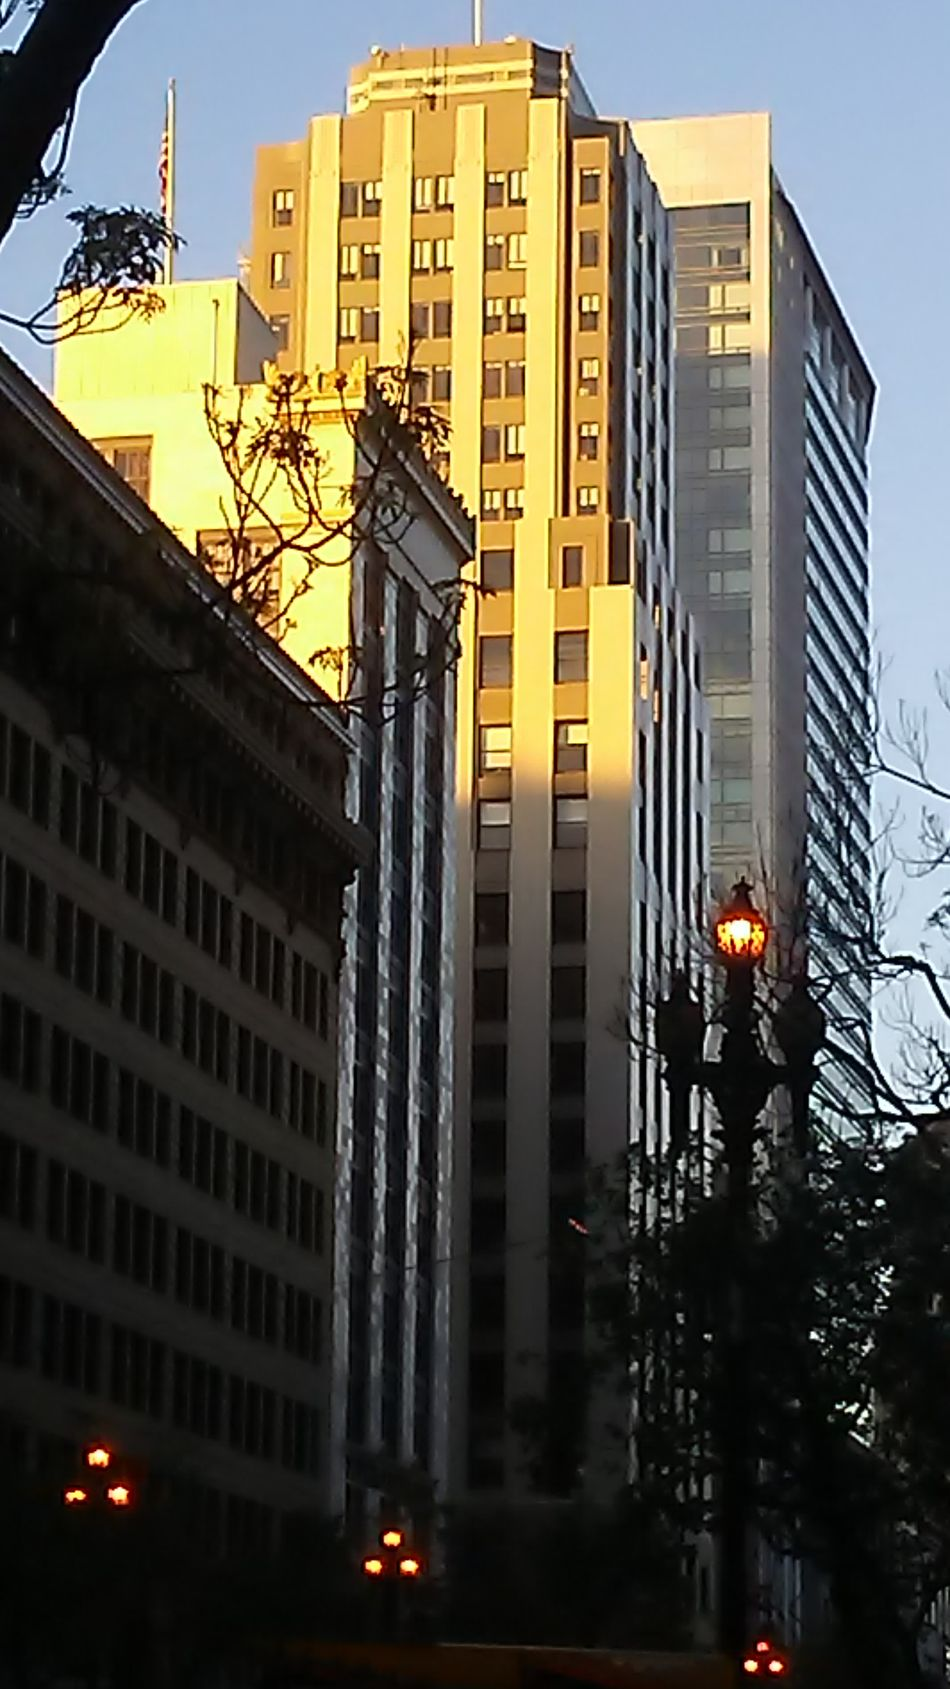 City Architecture Sunset Skyscraper Building Exterior Built Structure Business Finance And Industry No People Tree Clock Outdoors Sky Cityscape San Francisco Day Structure